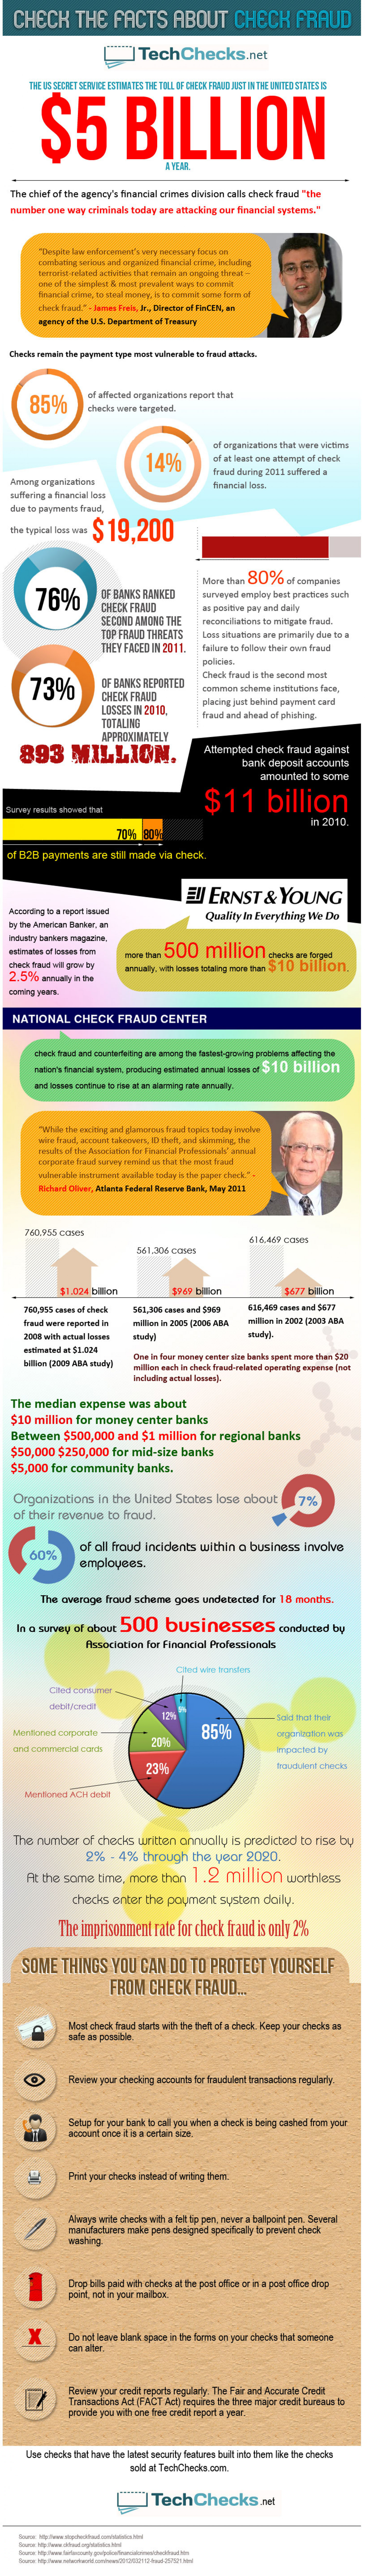 Check The Facts About Check Fraud Infographic